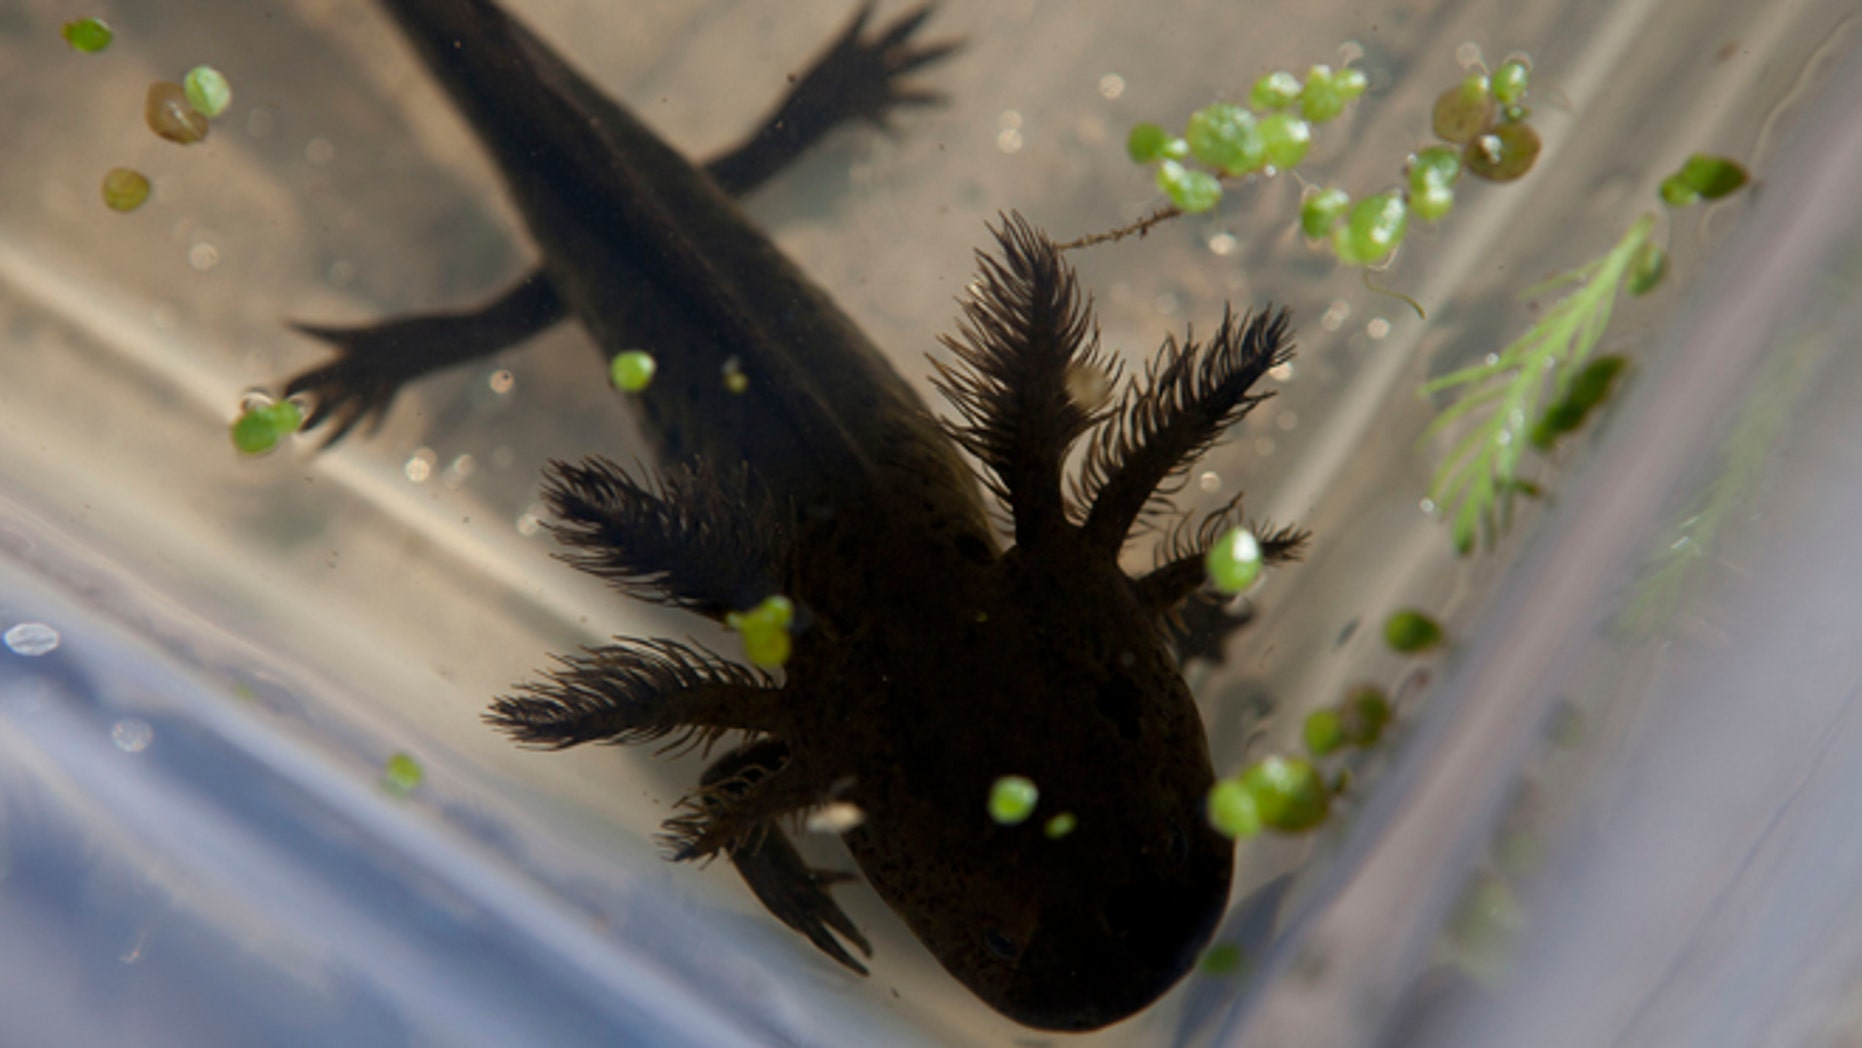 """In this Friday, Feb. 21, 2014 photo, a young axolotl swims inside a plastic container at an experimental canal run by Mexico's National Autonomous University (UNAM) in the Xochimilco network of lakes and canals in Mexico City. Investigators have begun a search in hopes of finding what may be the last free-roaming axolotl. Not one axolotl was found during last year's effort at finding them in the wild in Xochimilco, their only natural habitat. The axolotl is known as the """"water monster"""" and the """"Mexican walking fish."""" (AP Photo/Dario Lopez-Mills)"""